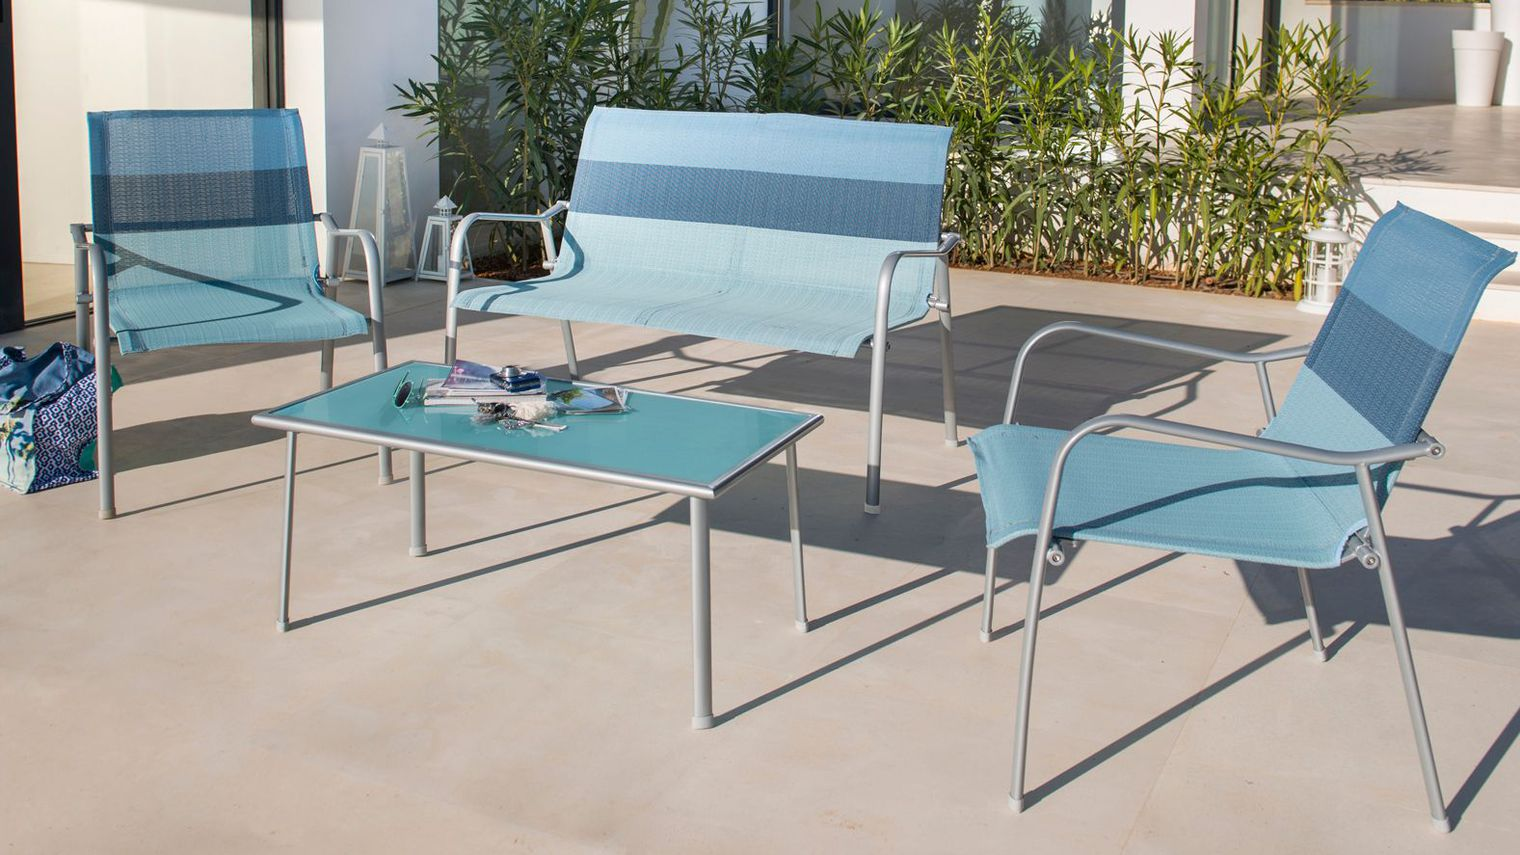 Table salon de jardin en solde royal sofa id e de - Salon de jardin d angle pas cher ...